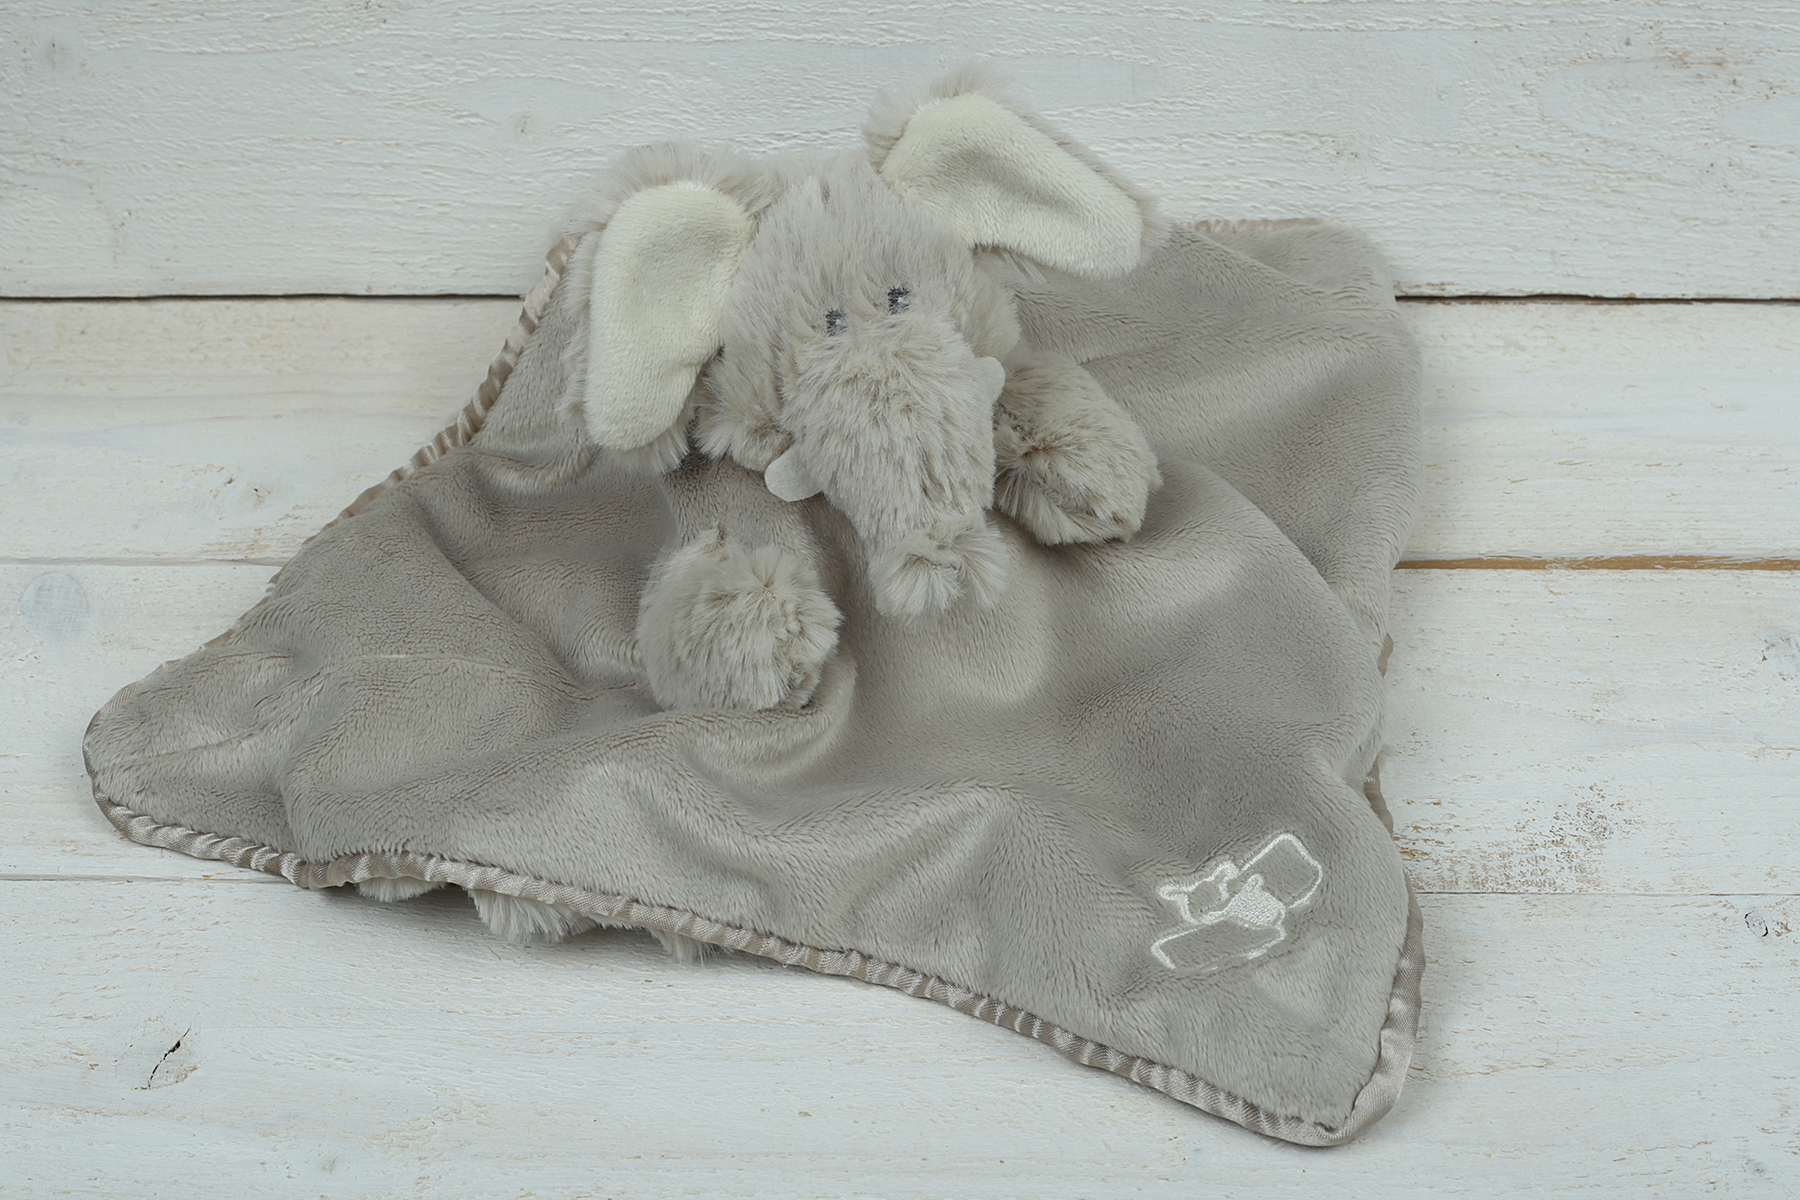 ELEPHANT SOOTHER/FINGER PUPPET JOMANDA